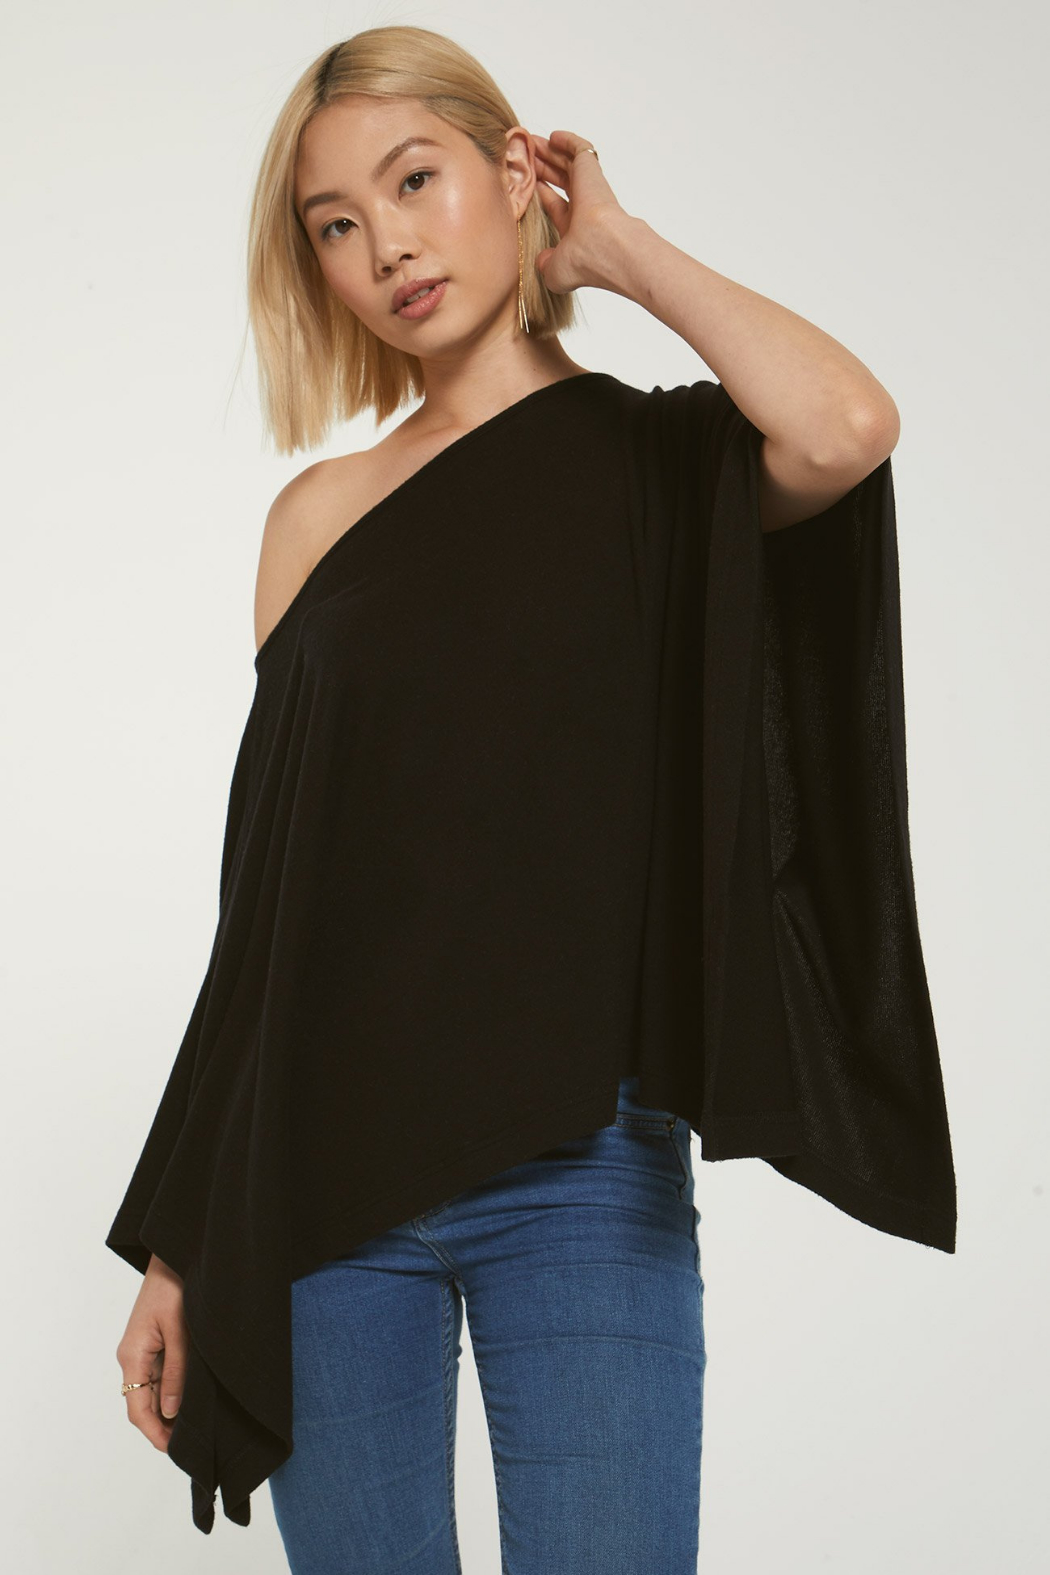 z supply Ruby Marled Poncho - Main Image